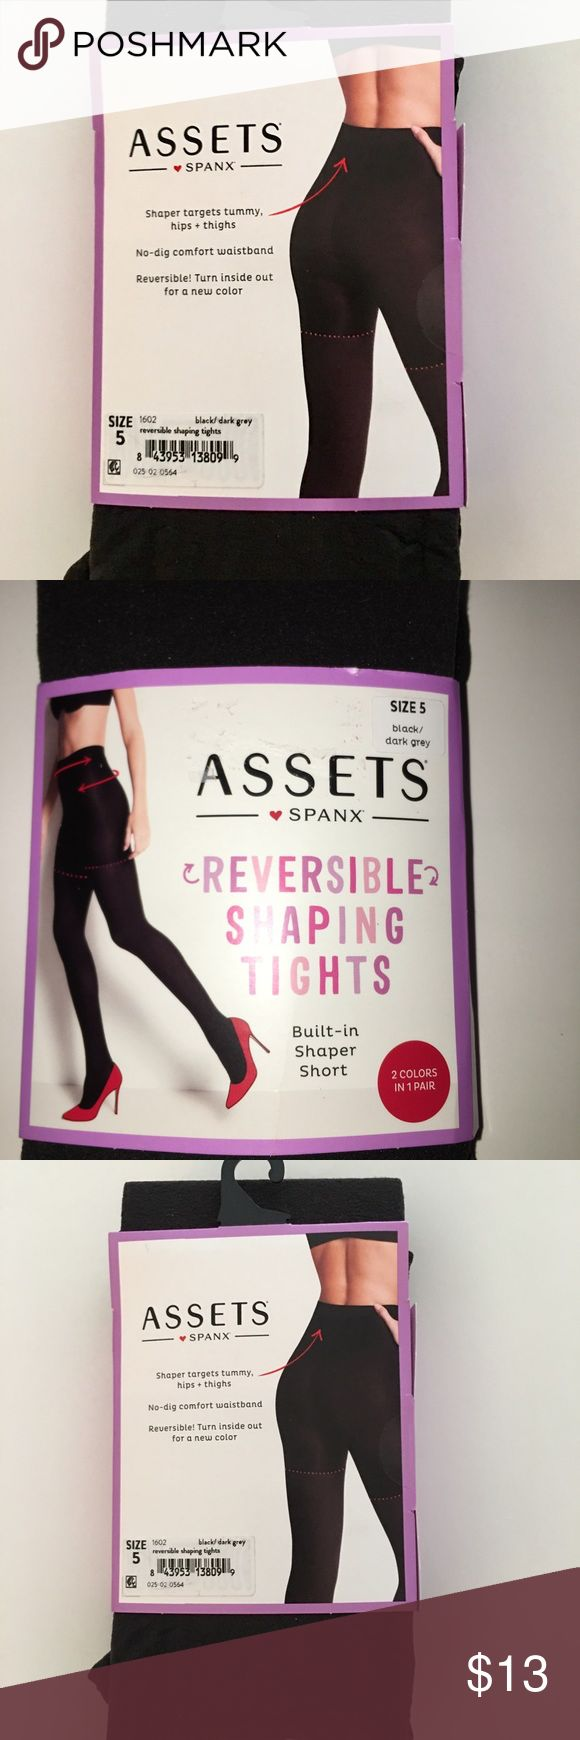 Tights by Assets Spanx, NEW UNOPENED Black/Grey Tights with built-in shaper.  Size 5 which fits height: 5'4 to 6'0. Weight  220-265 pounds.  NWT.  I purchased the wrong size,  just trying to make my $ back.. Assets By Spanx Accessories Hosiery & Socks